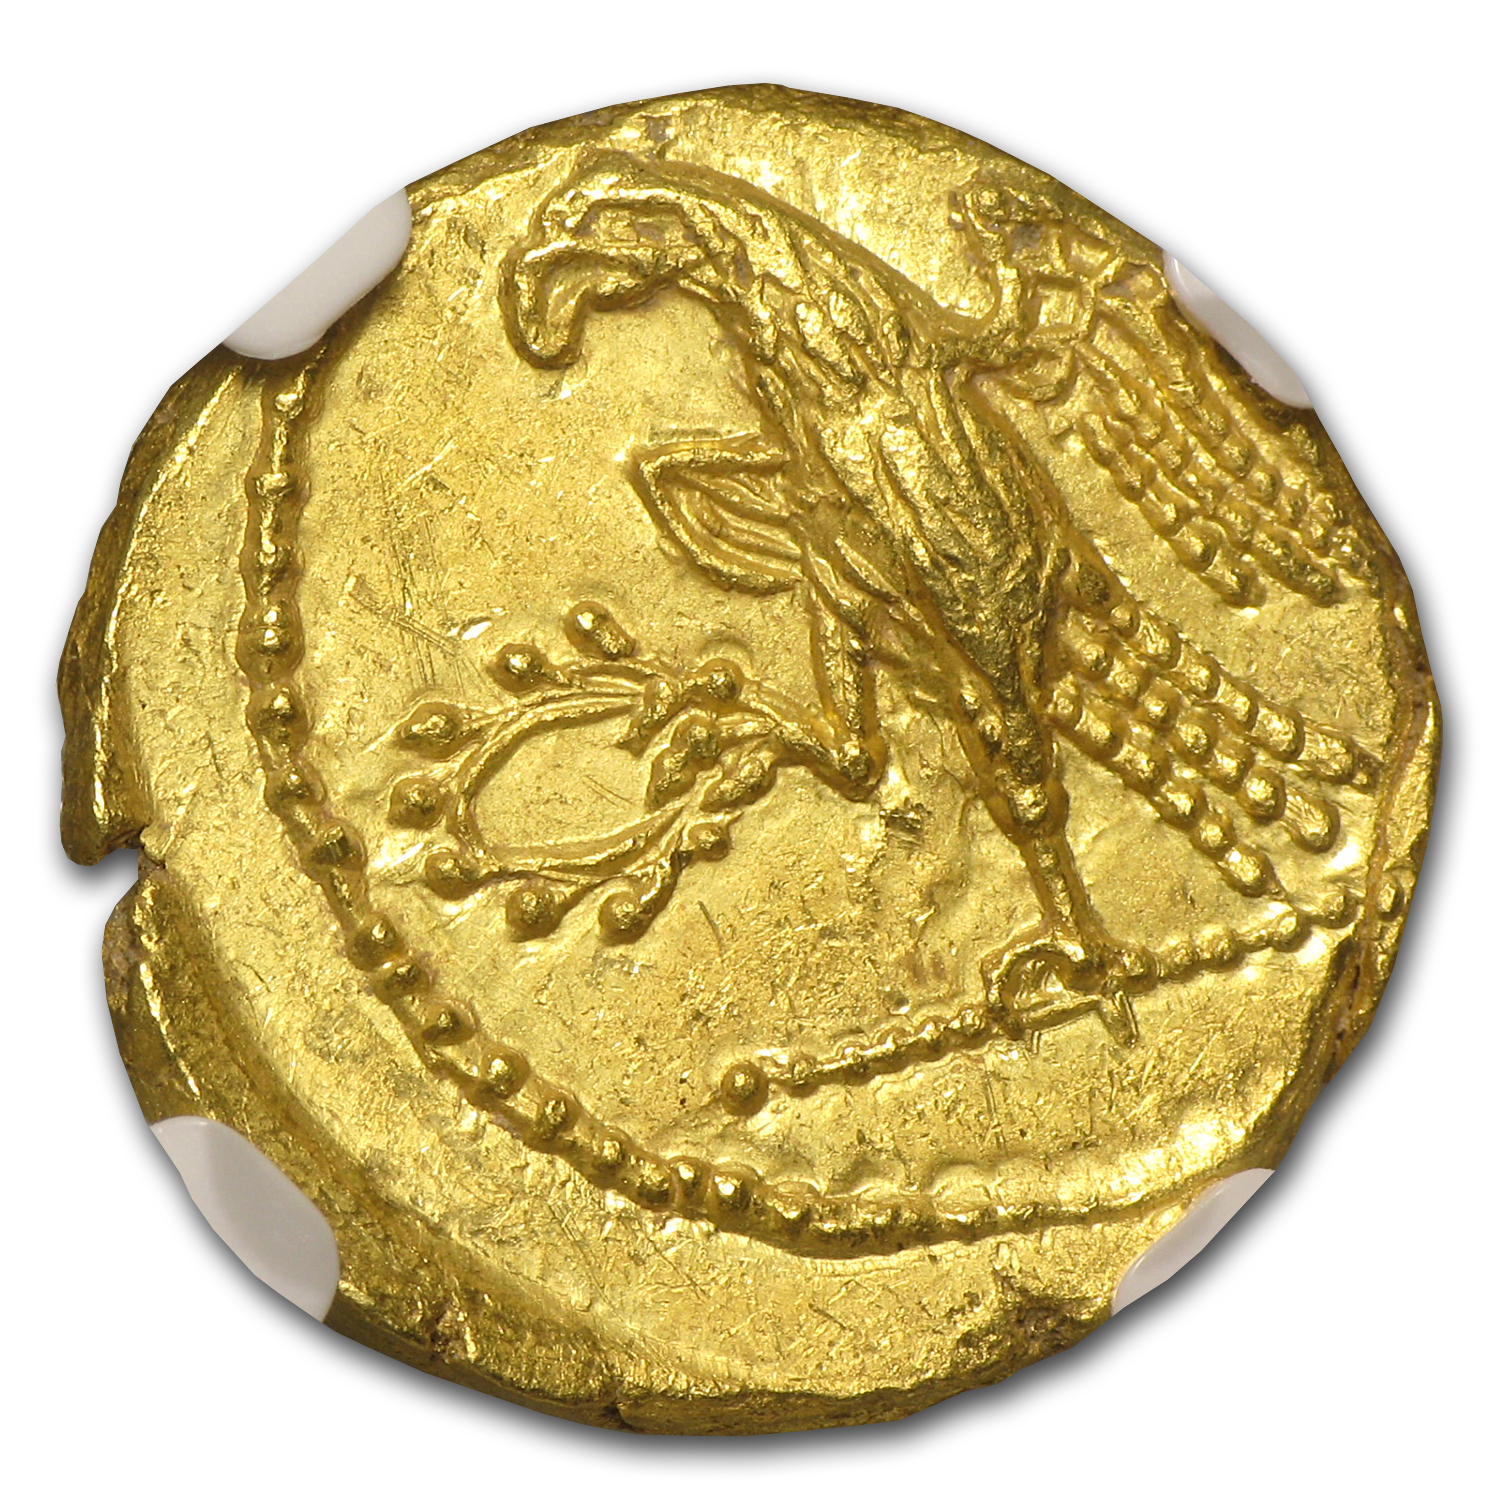 Thracian/Scythian Gold Stater MS NGC (1st Century BC)